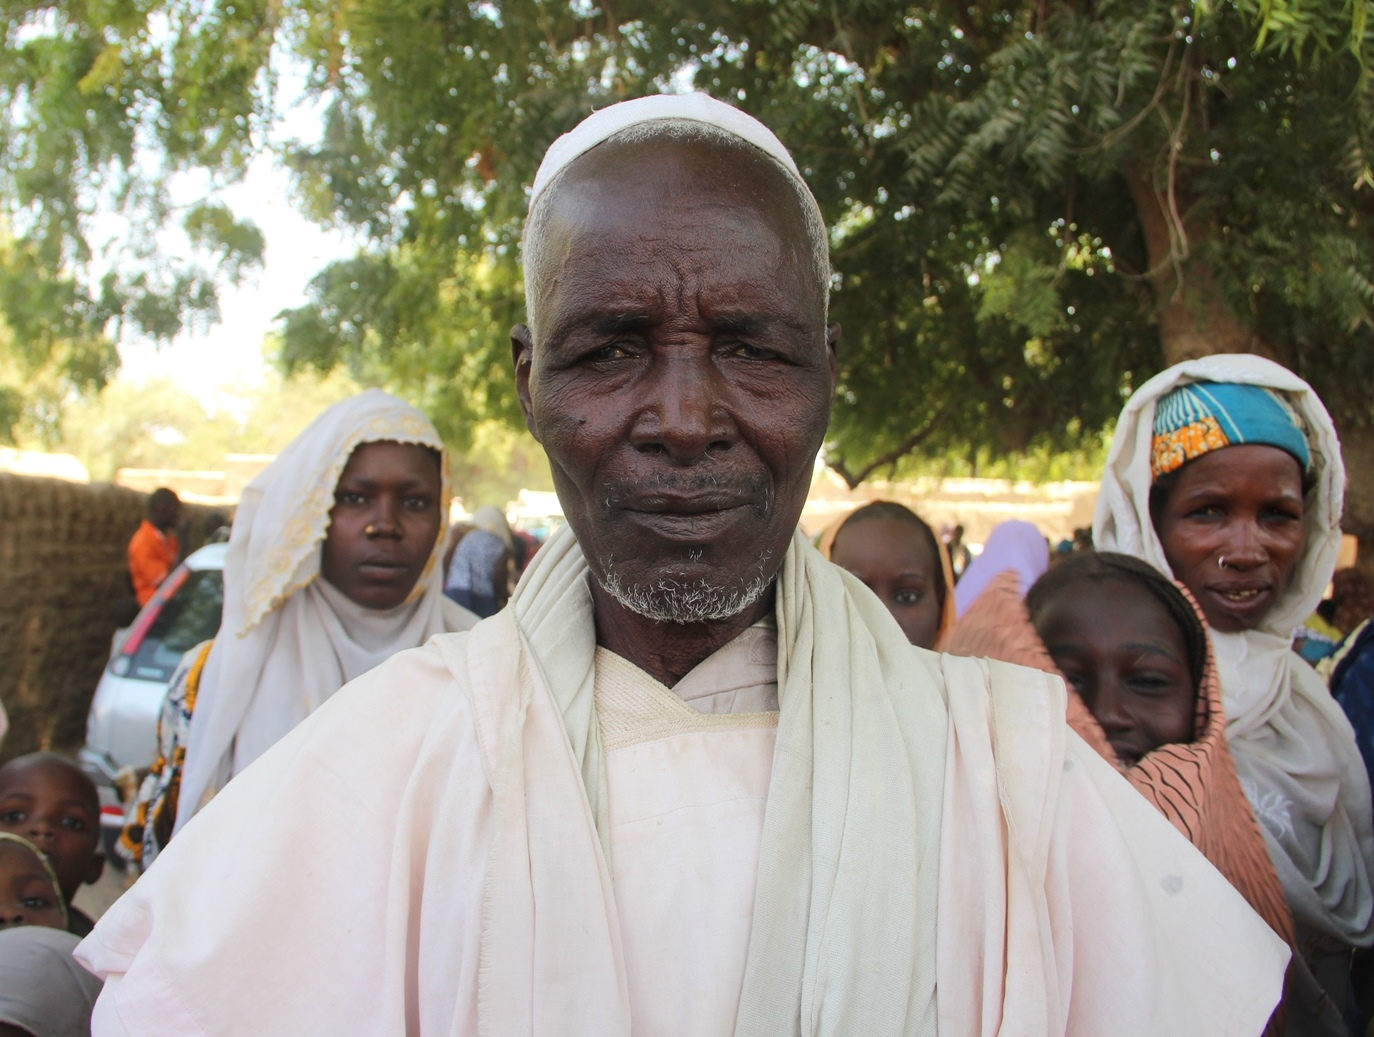 Kaselma Bouma, chief of Gasseré village in Niger, on the Nigeria border, which took in 80 displaced families who fled a Boko Haram attack on 18th January. UNHCR and ICRC provided aid to some of the families at the end of January. on the border of Niger a